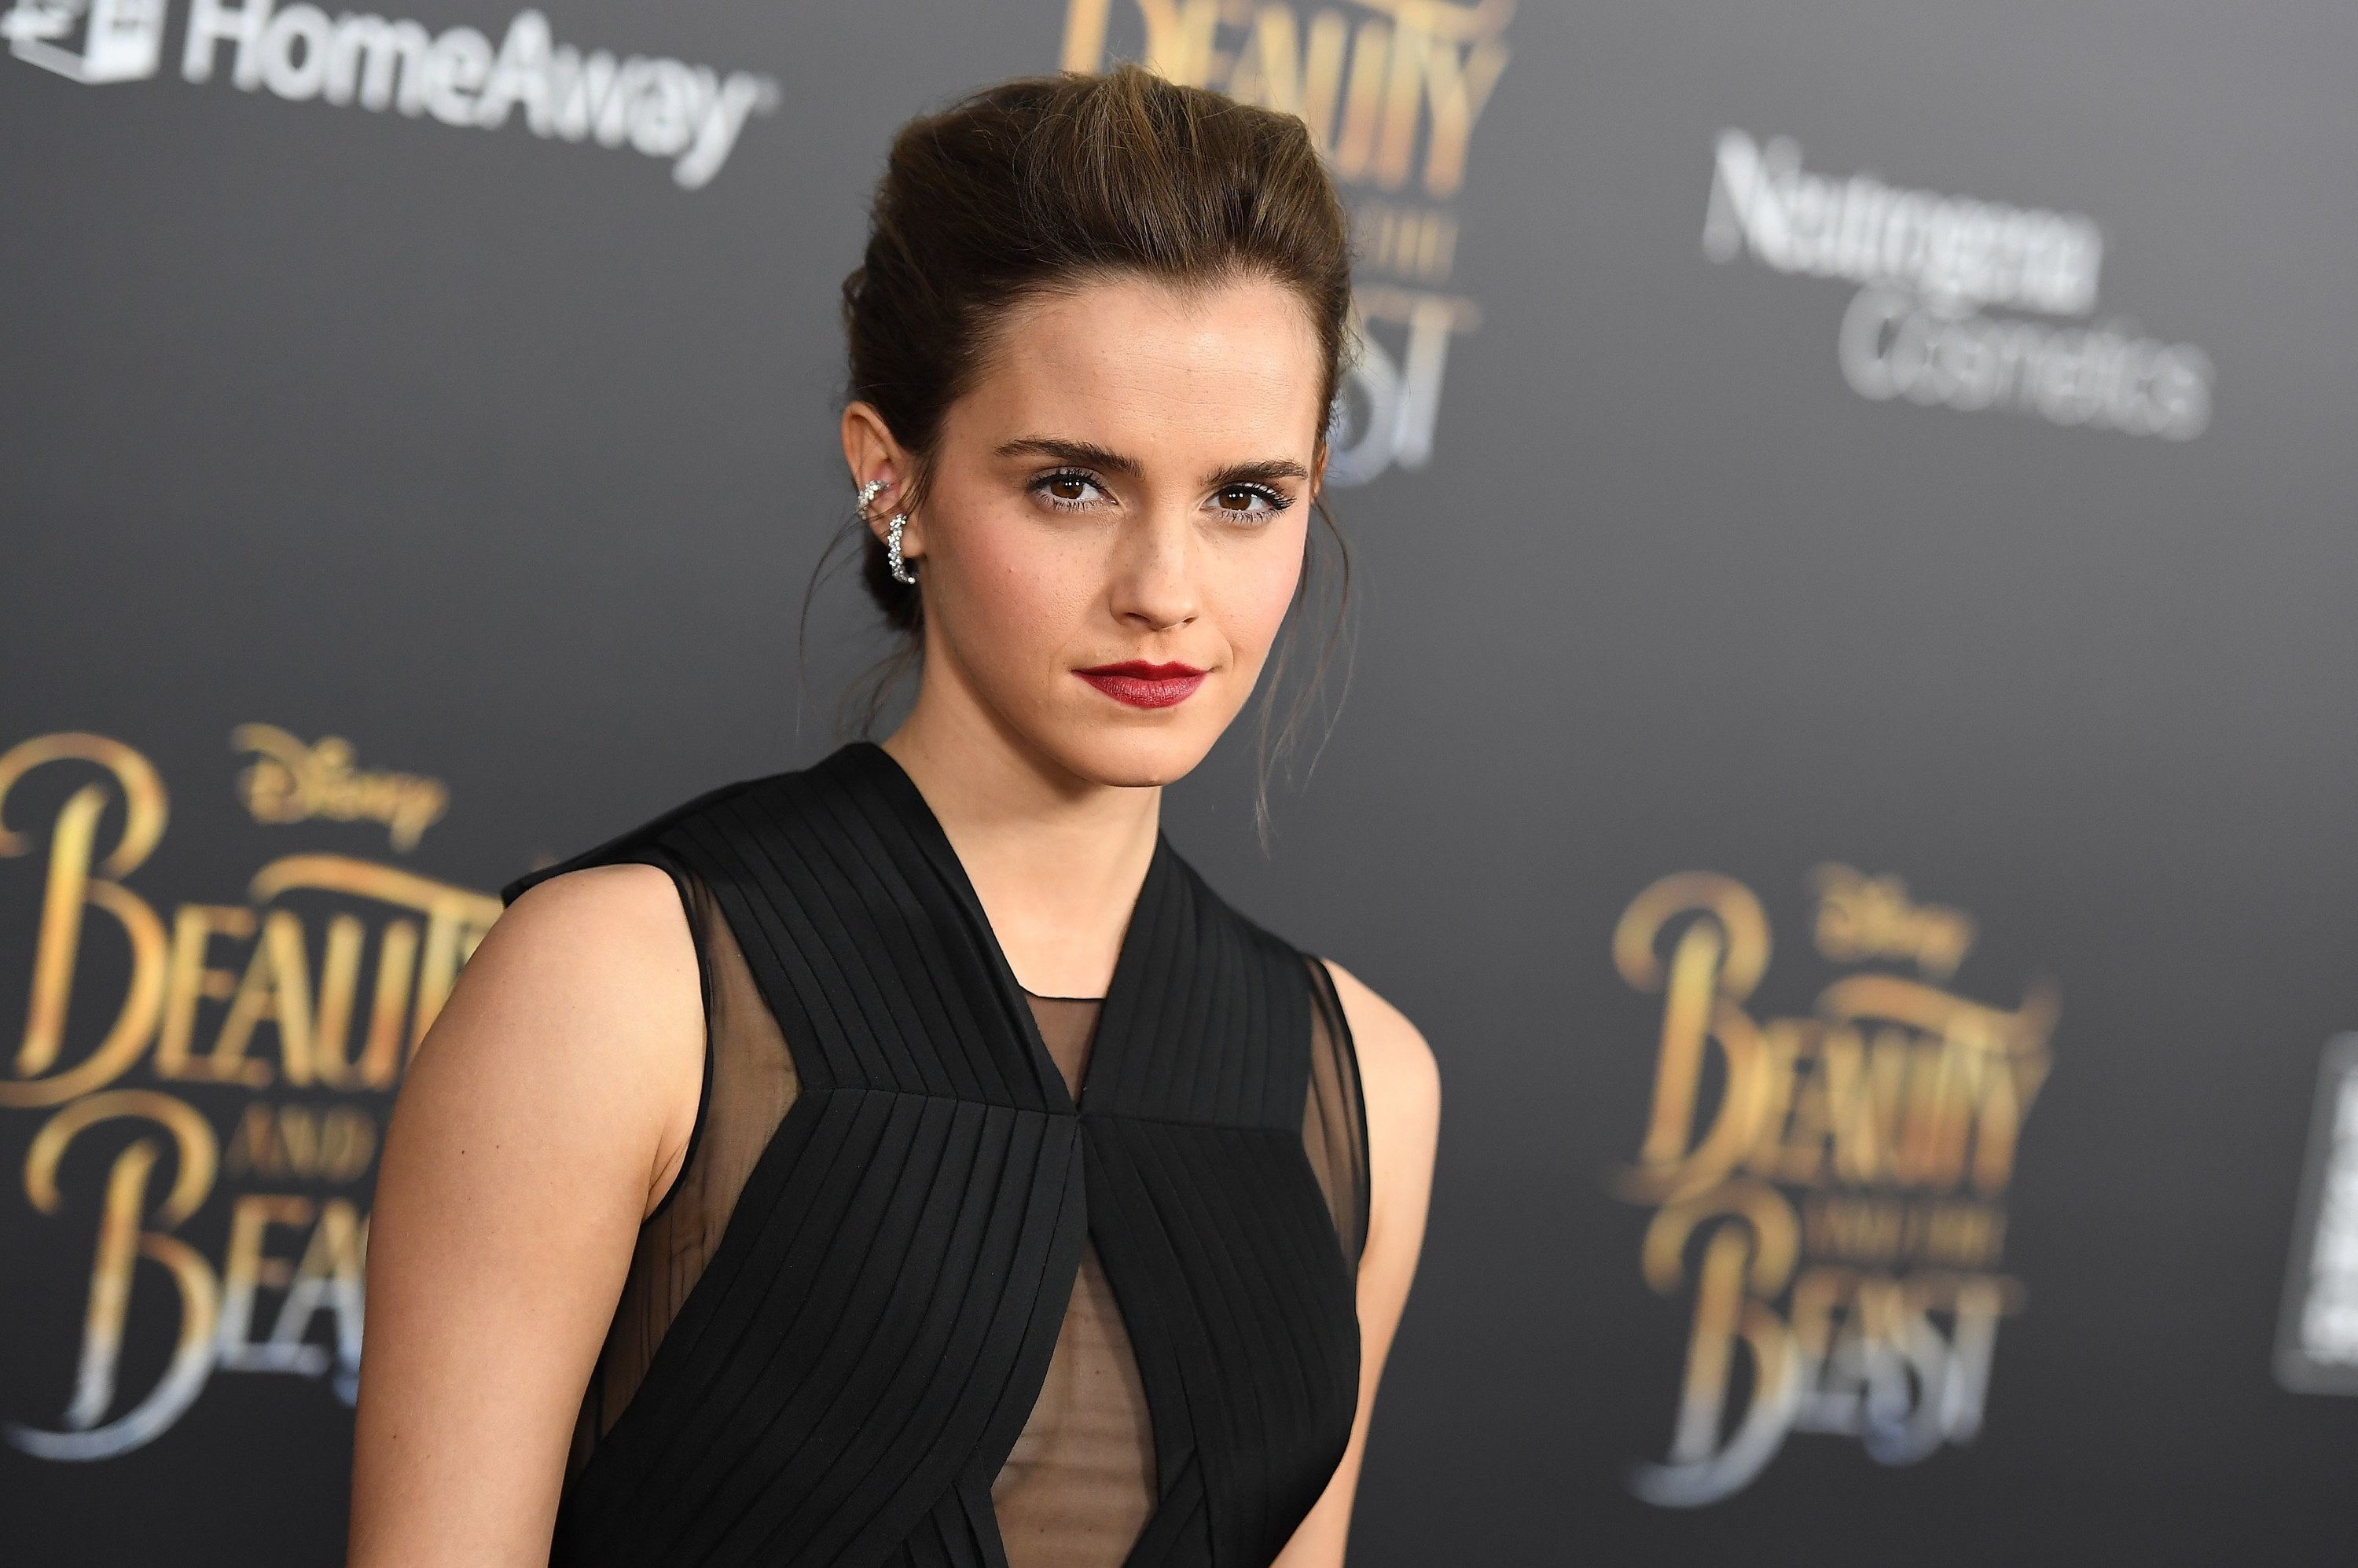 Emma Watson Makes Statement Supporting Black Lives Matter After Blackouttuesday Backlash